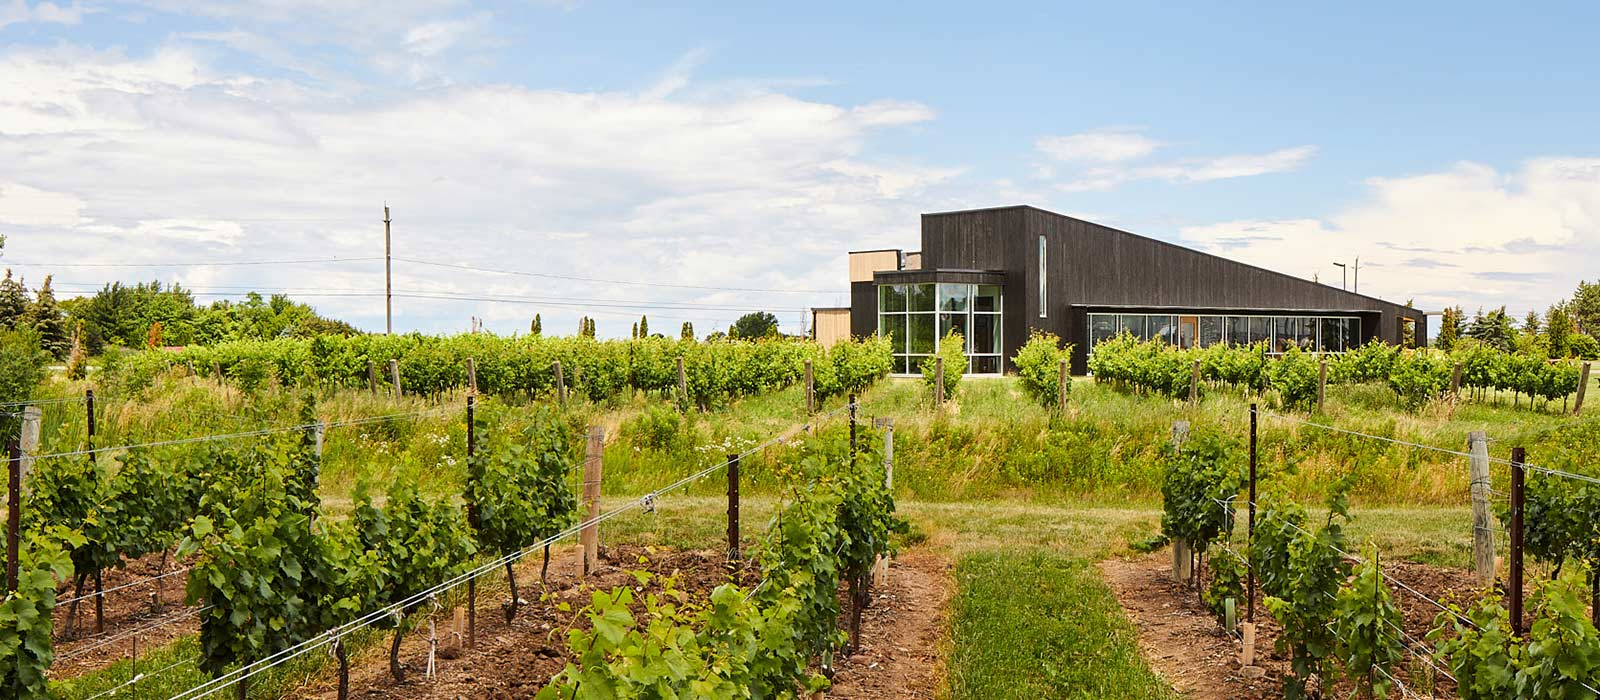 About Lakeview Wine Co. Niagara Winery